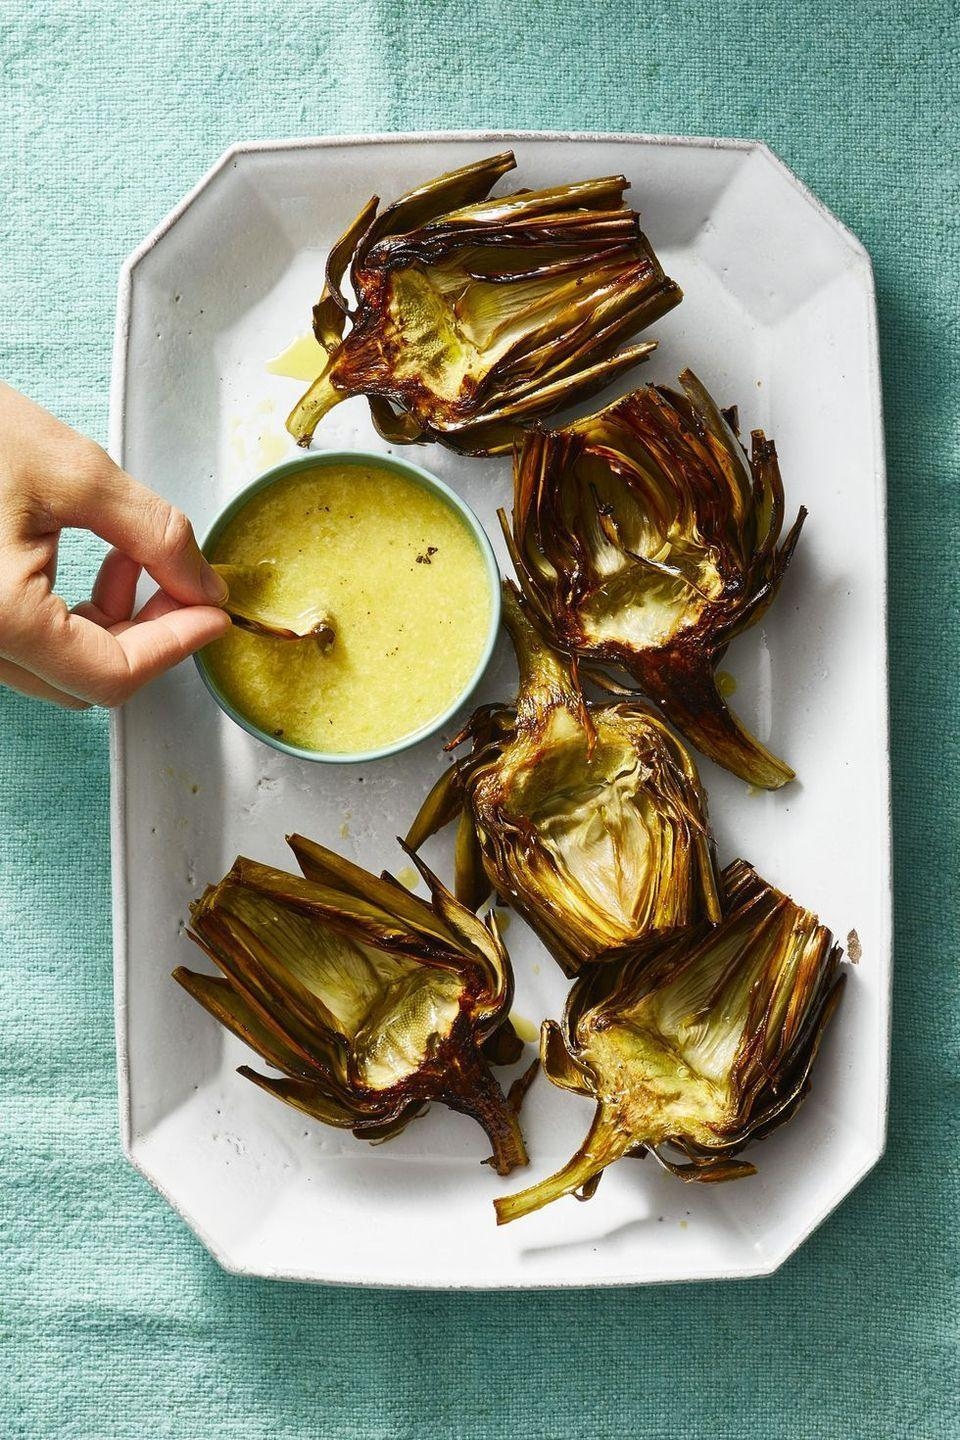 """<p>If you love <a href=""""https://www.goodhousekeeping.com/food-recipes/a28497576/best-ever-spinach-and-artichoke-dip-recipe/"""" rel=""""nofollow noopener"""" target=""""_blank"""" data-ylk=""""slk:artichoke dip"""" class=""""link rapid-noclick-resp"""">artichoke dip</a> but you're looking for something a little lighter, try this roasted artichoke recipe. The cheesy mustard dressing packs plenty of flavor unto these artichokes.</p><p><em><a href=""""https://www.goodhousekeeping.com/food-recipes/easy/a19865653/roasted-artichokes-with-caesar-dip-recipe/"""" rel=""""nofollow noopener"""" target=""""_blank"""" data-ylk=""""slk:Get the recipe for Roasted Artichokes with Caesar Dip"""" class=""""link rapid-noclick-resp"""">Get the recipe for Roasted Artichokes with Caesar Dip </a><a href=""""https://www.goodhousekeeping.com/food-recipes/easy/a19865653/roasted-artichokes-with-caesar-dip-recipe/"""" rel=""""nofollow noopener"""" target=""""_blank"""" data-ylk=""""slk:»"""" class=""""link rapid-noclick-resp"""">»</a></em></p><p><strong>RELATED: </strong><a href=""""https://www.goodhousekeeping.com/food-recipes/party-ideas/g4967/easy-dip-recipes/"""" rel=""""nofollow noopener"""" target=""""_blank"""" data-ylk=""""slk:Best Dips That Will Win Over Every Party Guest"""" class=""""link rapid-noclick-resp"""">Best Dips That Will Win Over Every Party Guest</a></p>"""